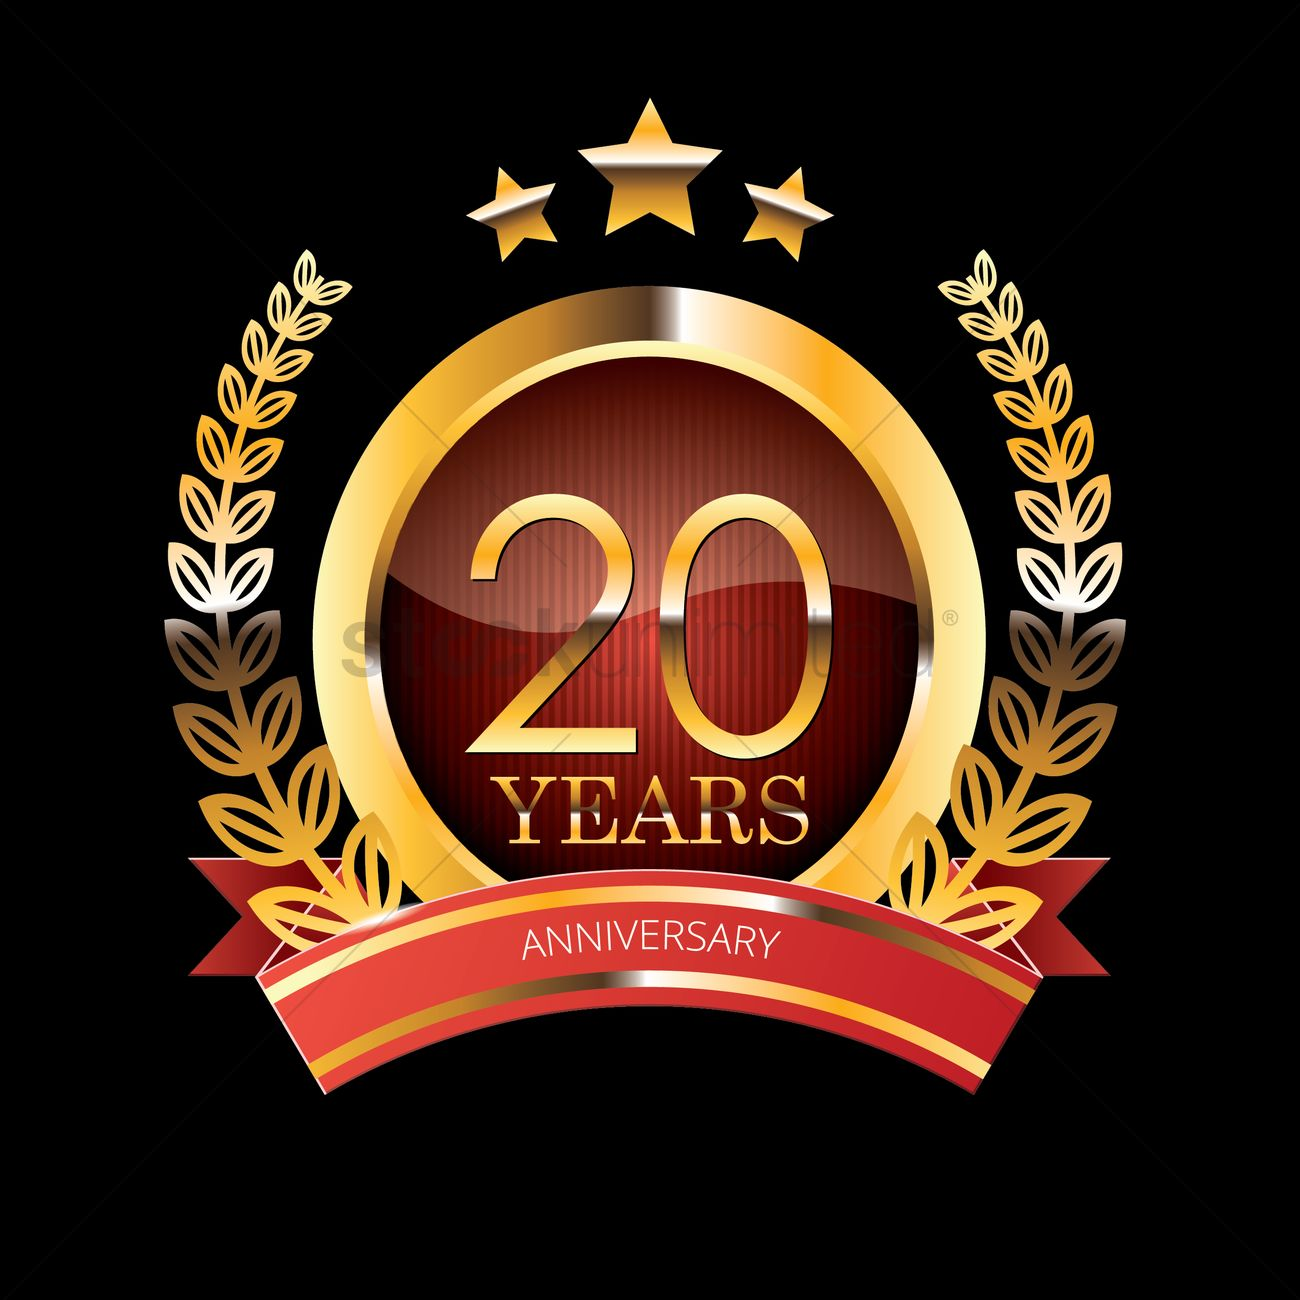 20 Years Anniversary Label With Ribbon Vector Image 1399807 Stockunlimited